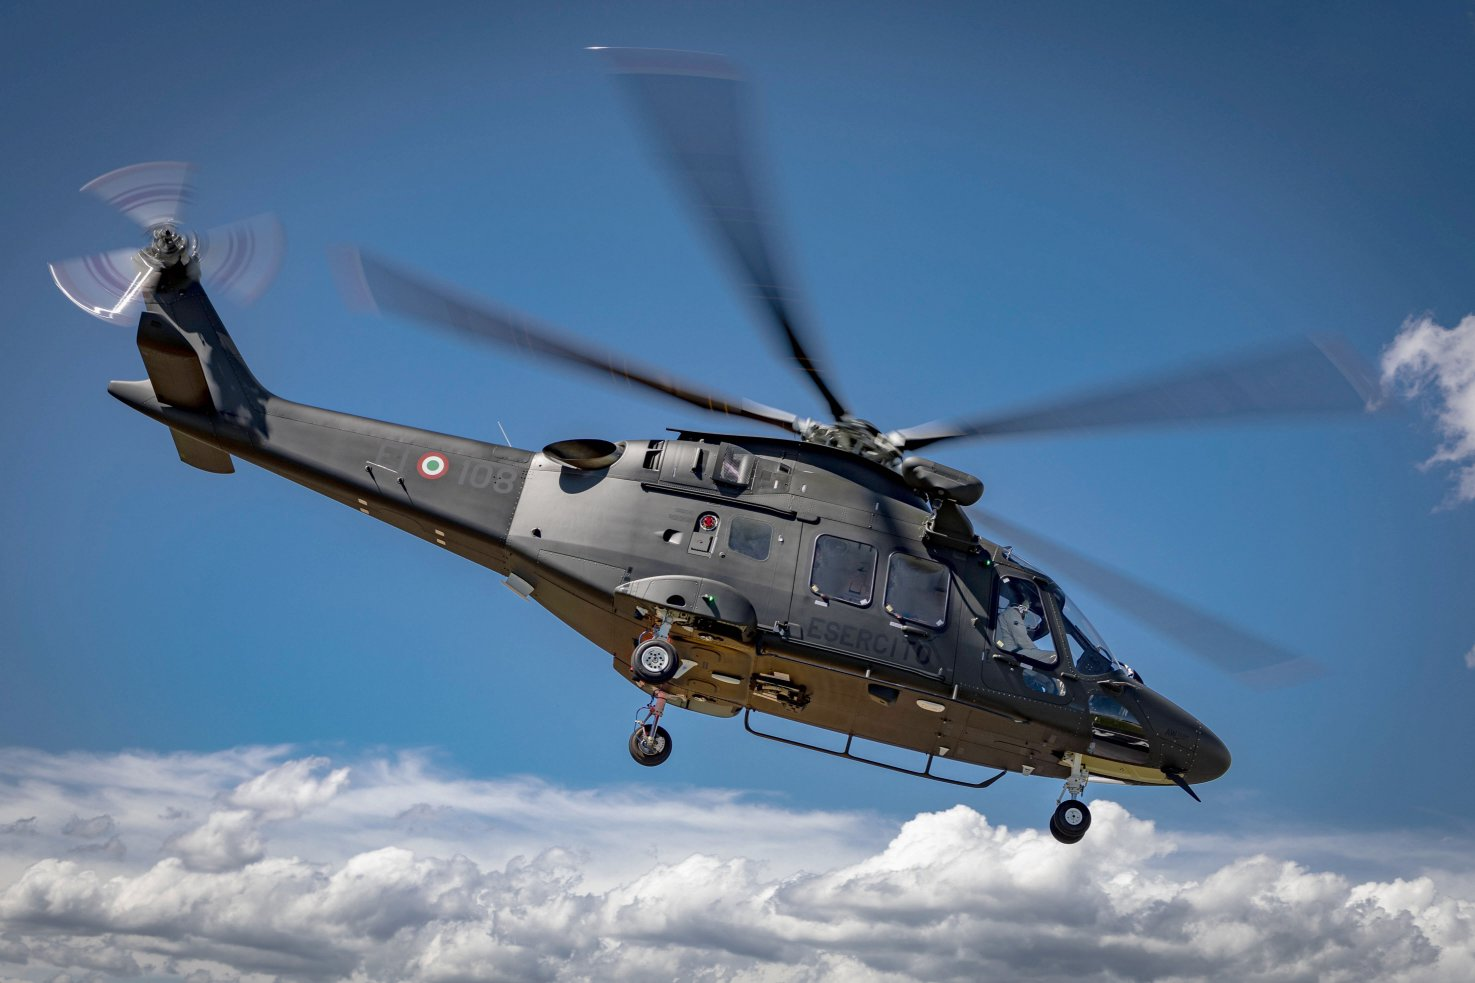 With Austria recently selecting the Italian-built AW169M, both nations are now looking to co-operate on future helicopter procurements through an LOI signed on 12 November. (Bundesheer Fotos)